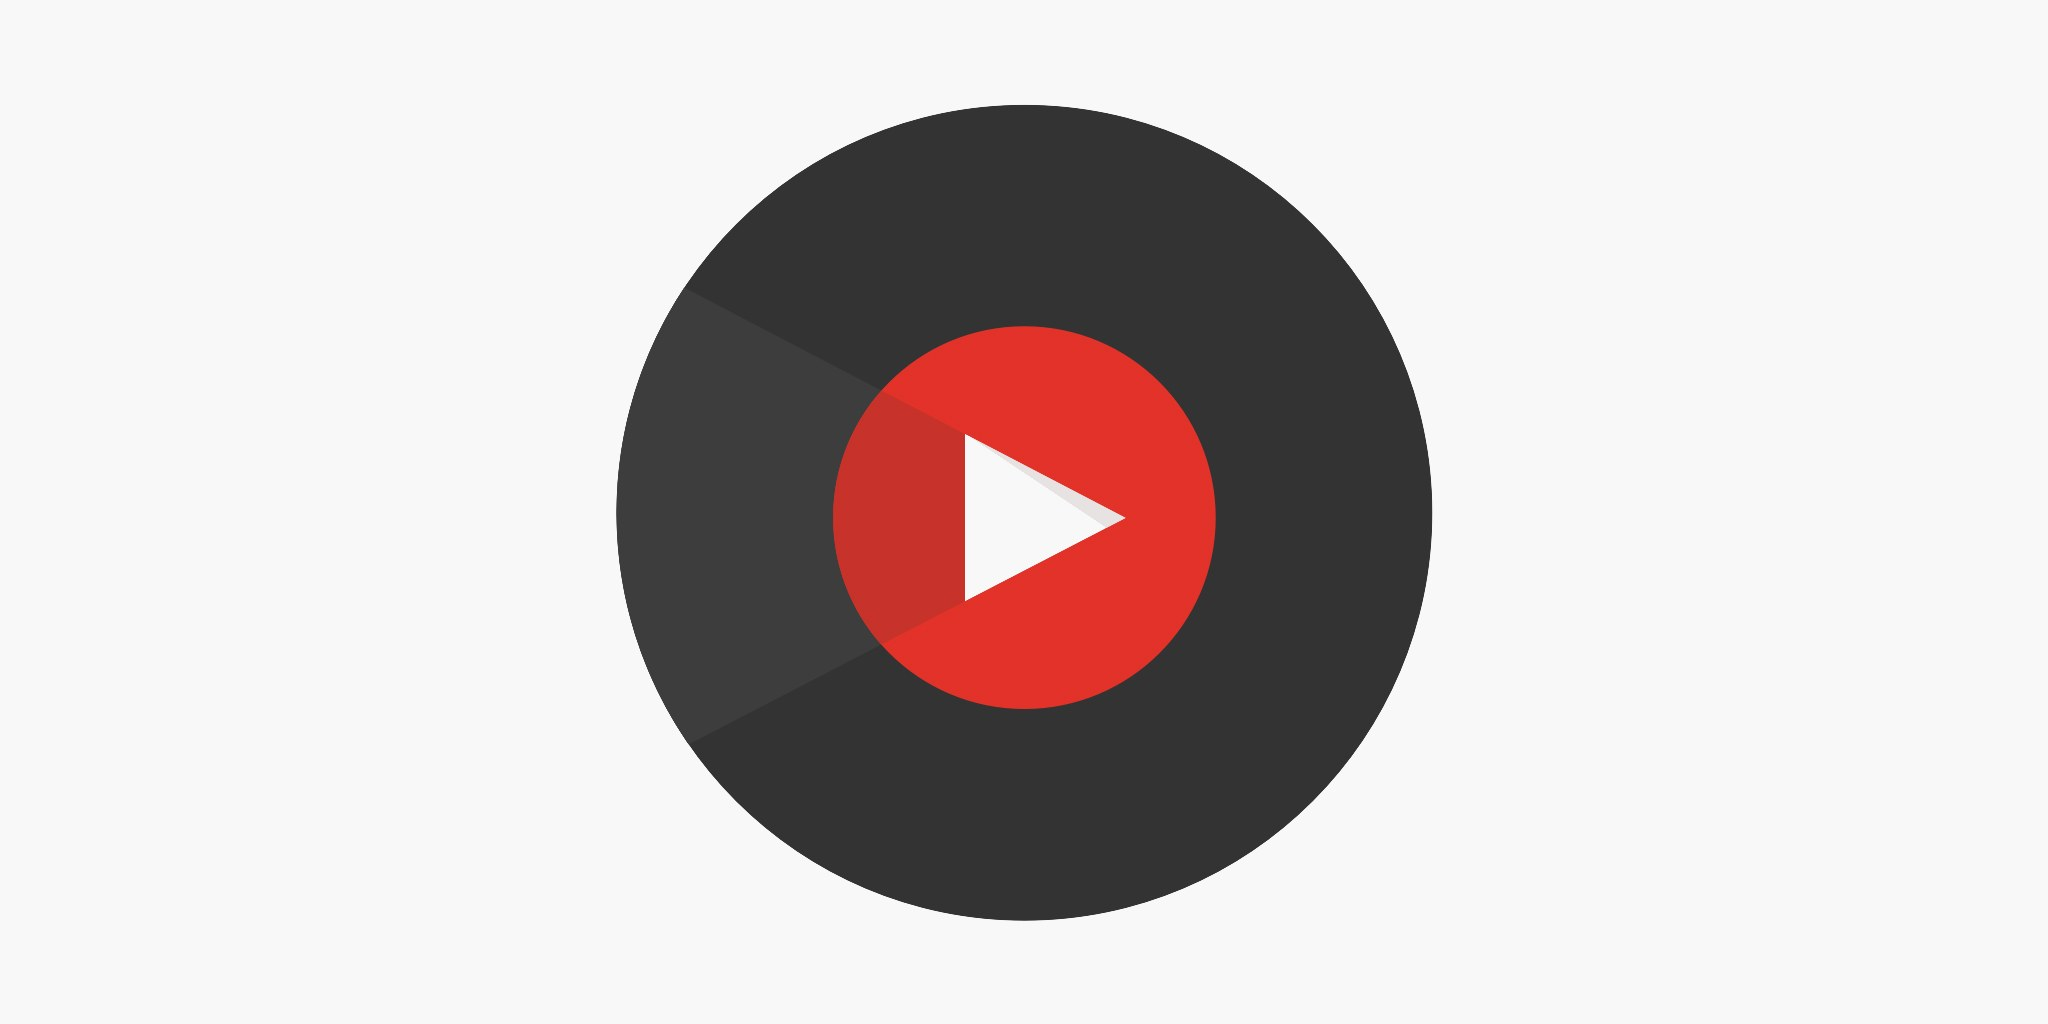 YouTube Launches its Own Music Streaming App and YouTube Premium